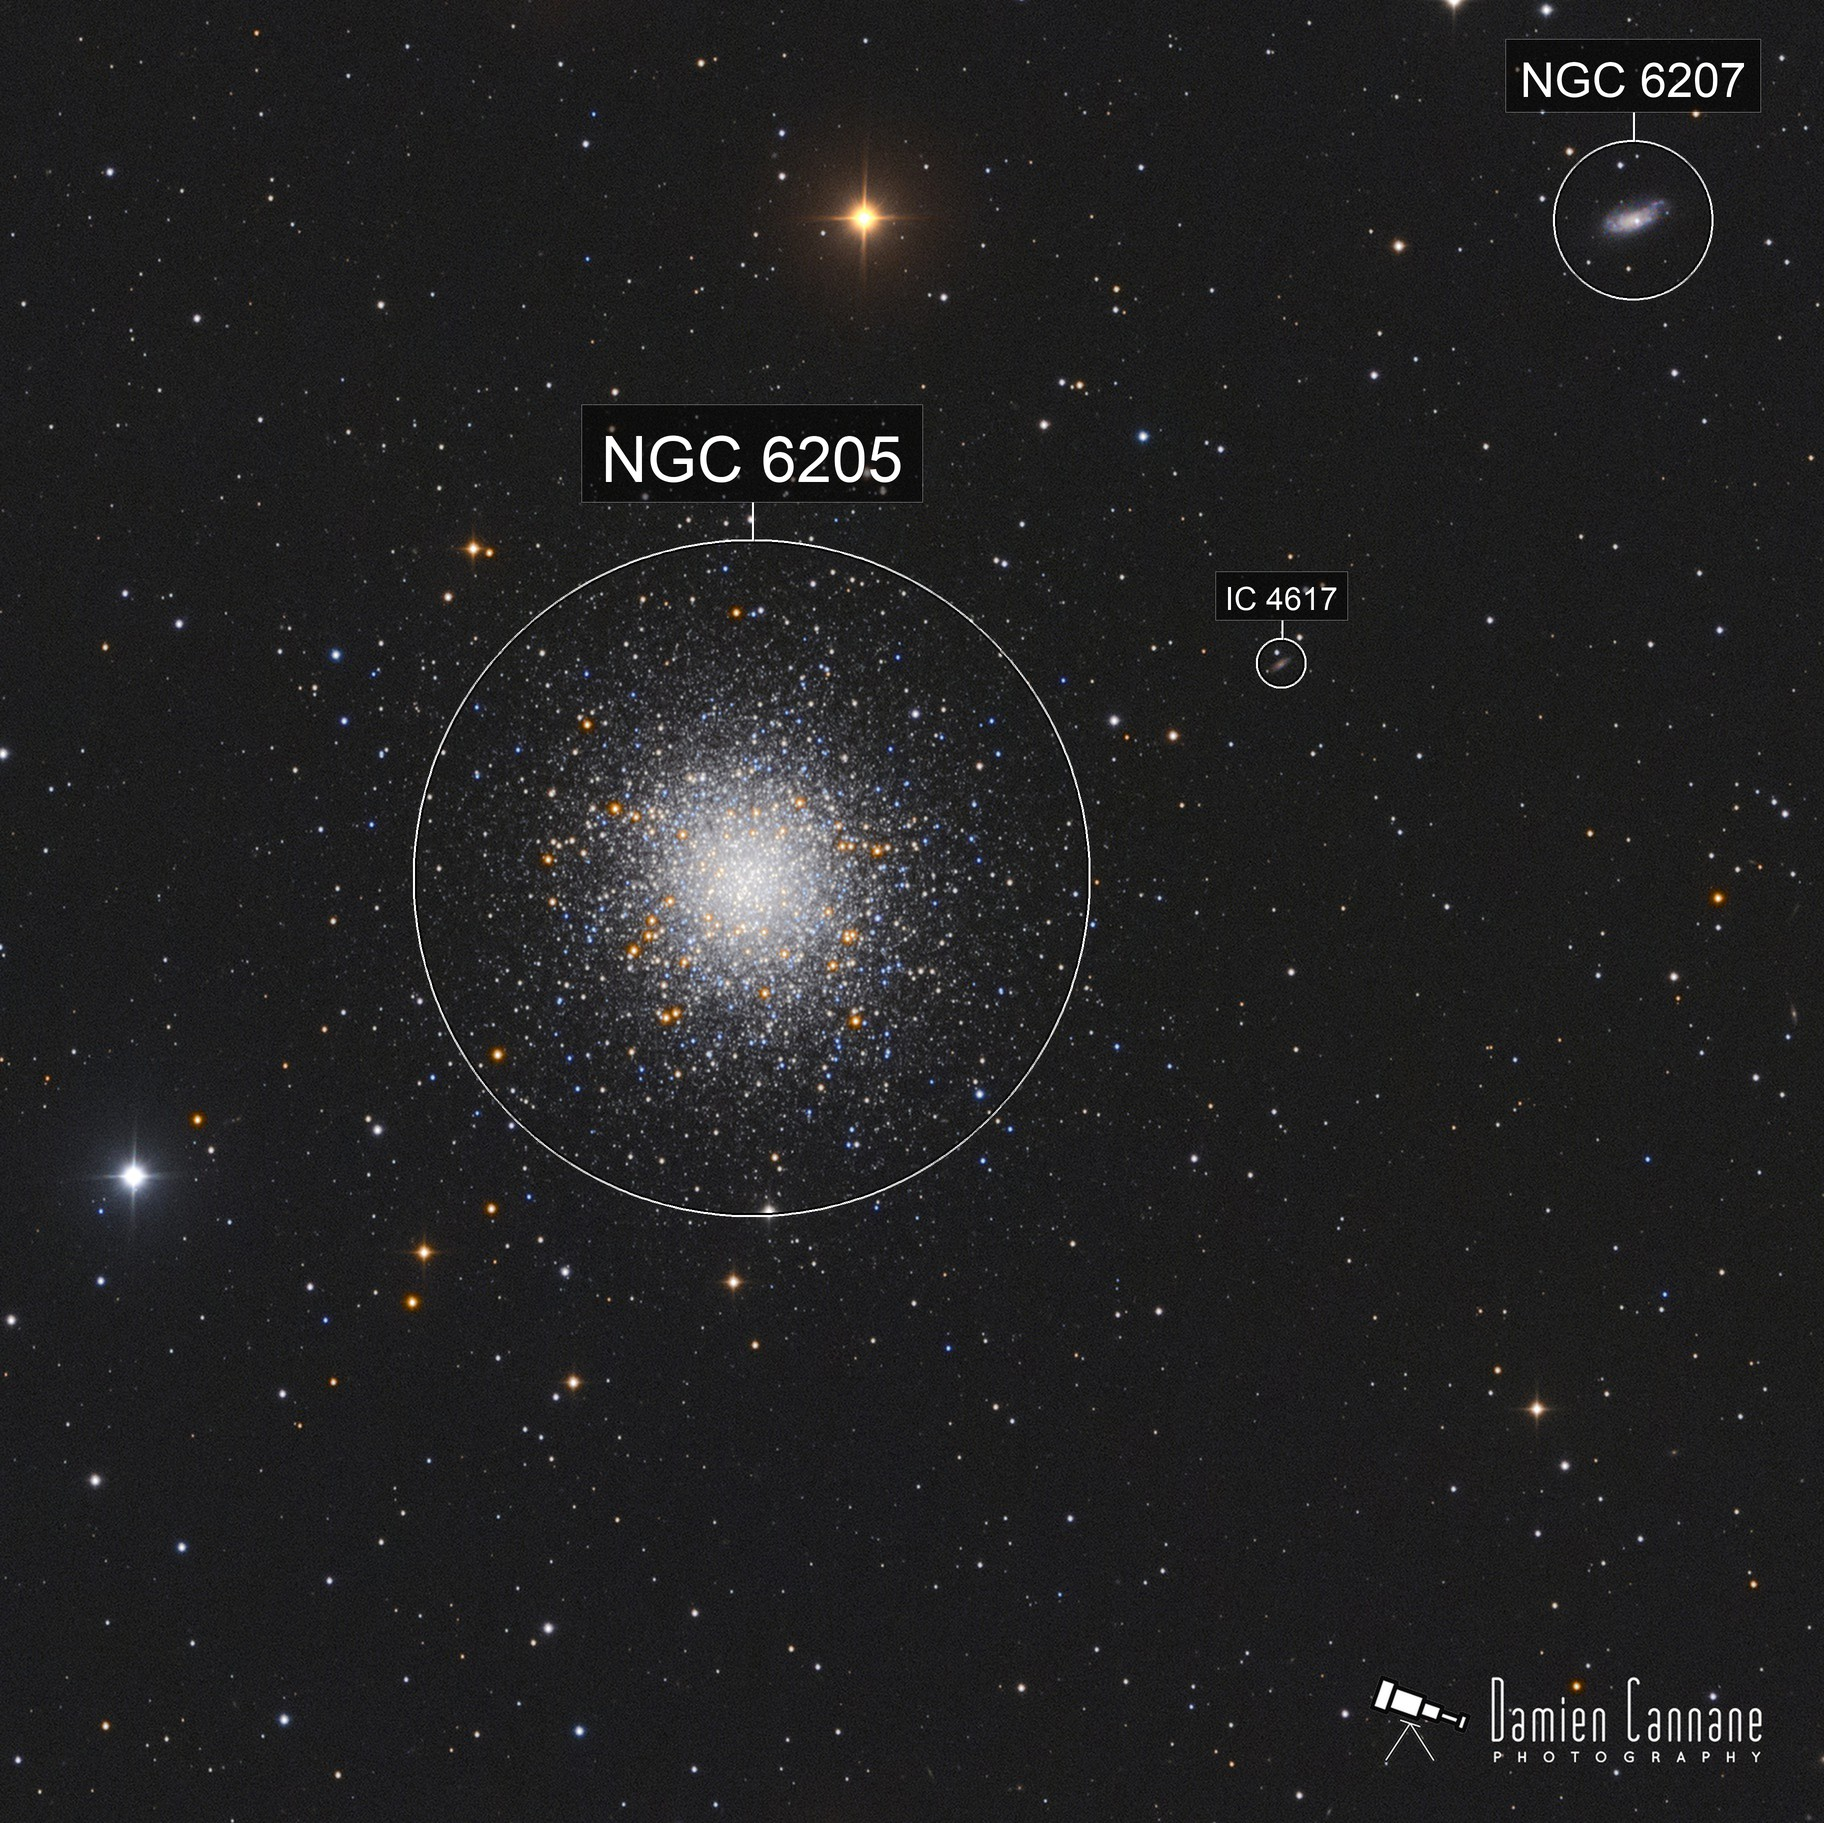 The Great Cluster in Hercules